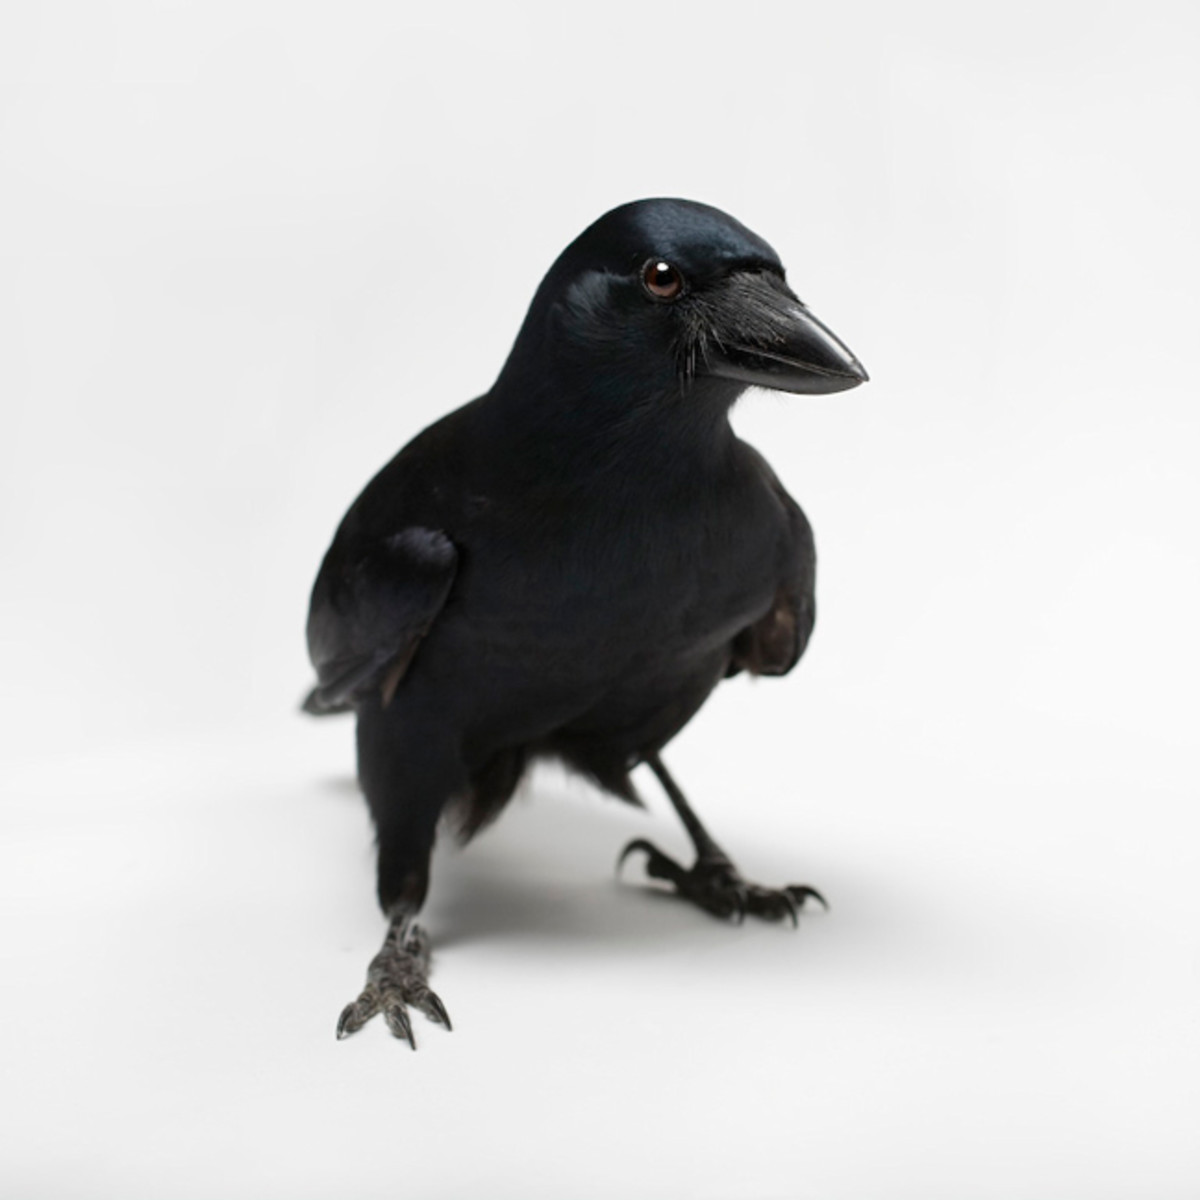 New Caledonian Crow - Worlds Most Intelligent Bird after the Parrot.New Caledonian Crow has the ability to manufacture and use new tools such as knives cut from stiff leaves and stiff stalks of grass